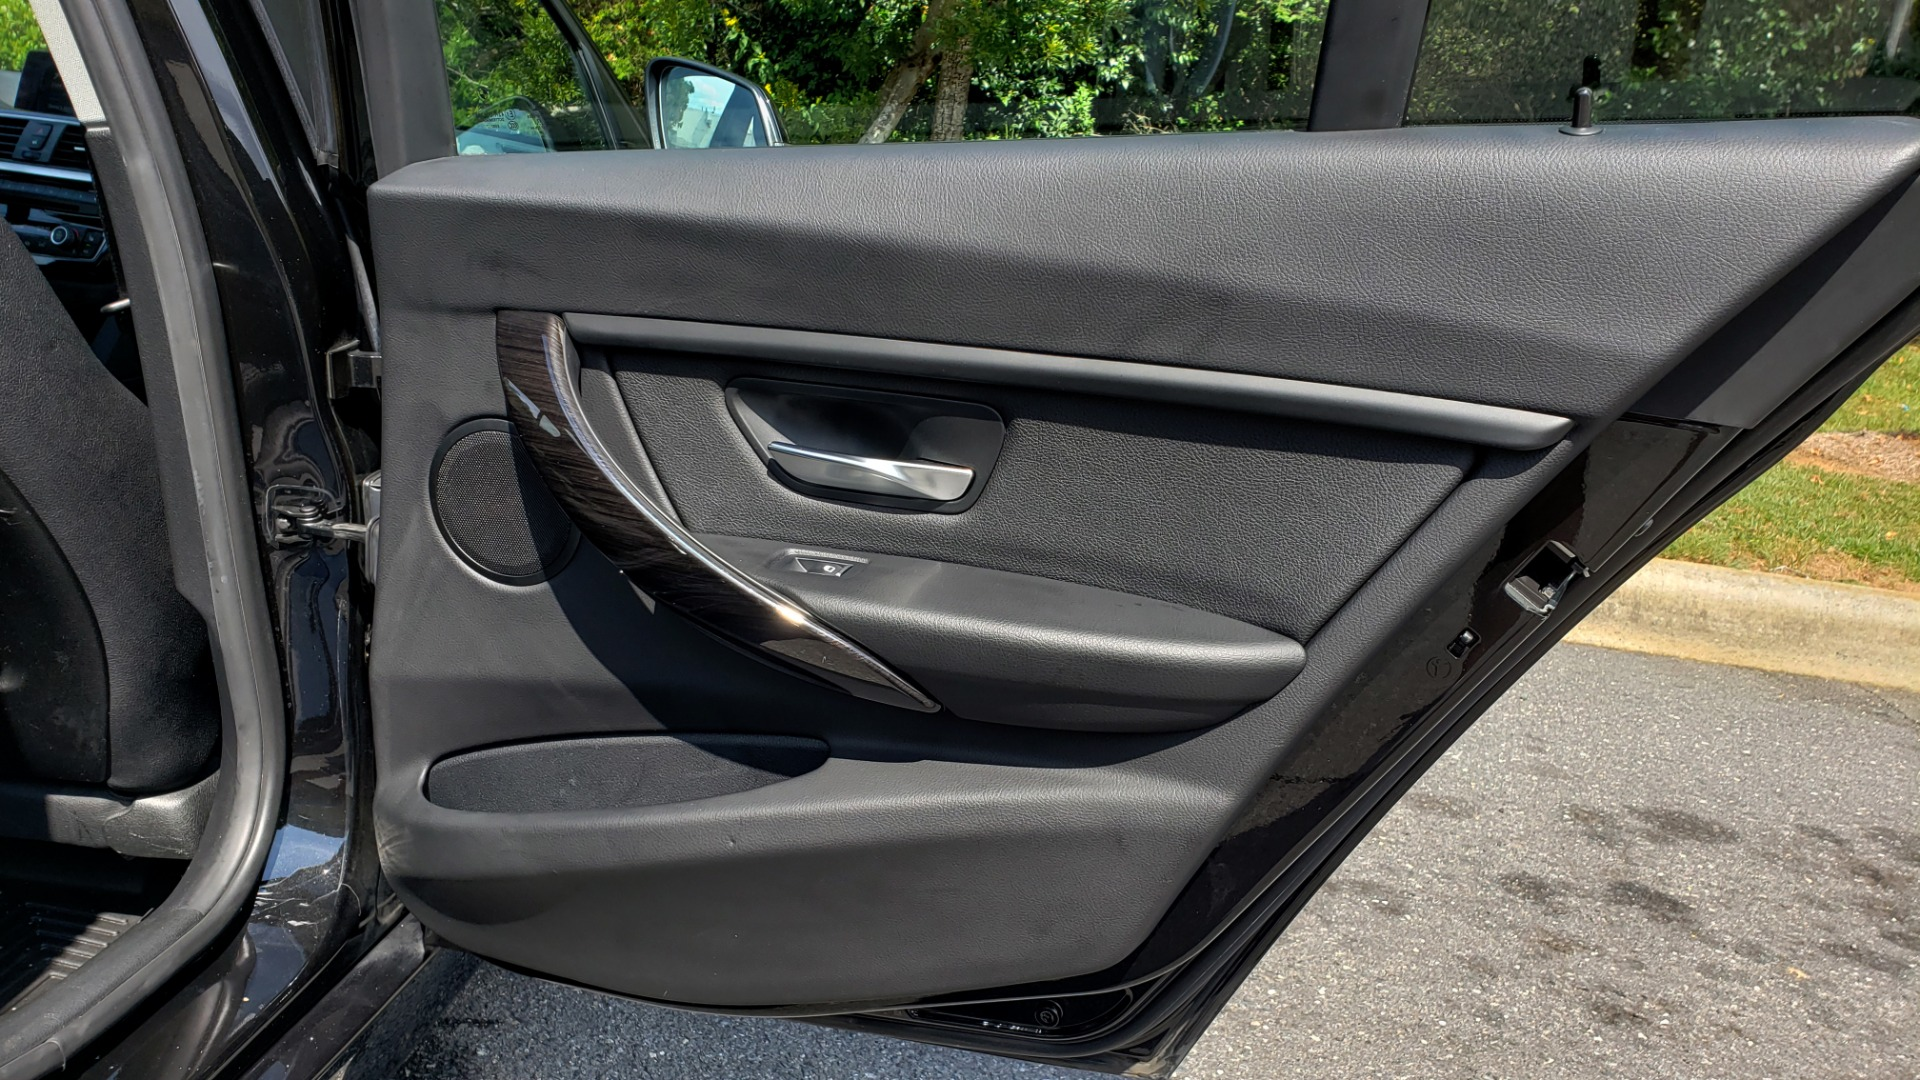 Used 2017 BMW 3 SERIES 320I XDRIVE / DRVR ASST / NAV / SUNROOF / HTD STS / REARVIEW for sale $21,995 at Formula Imports in Charlotte NC 28227 72